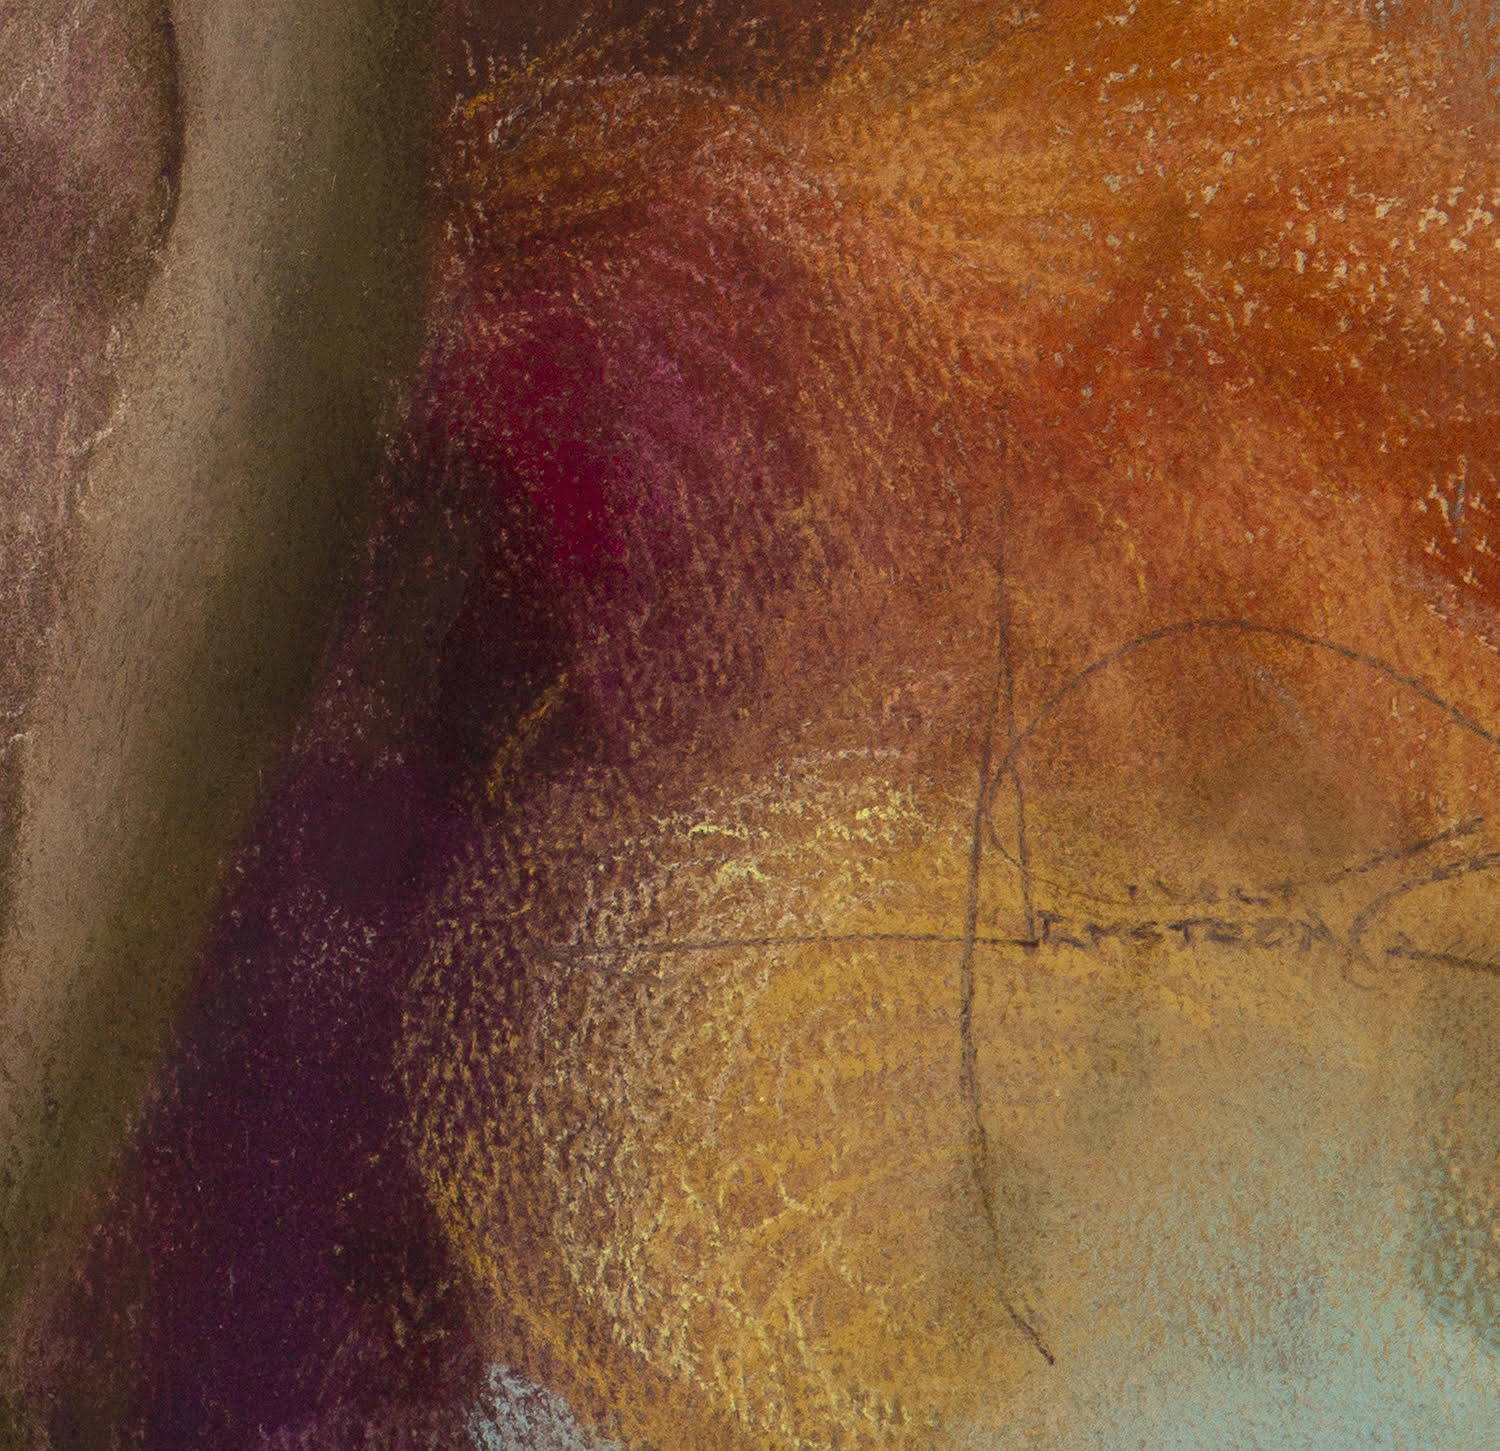 A close up shot of the artist's signature in the lower right of the pastel